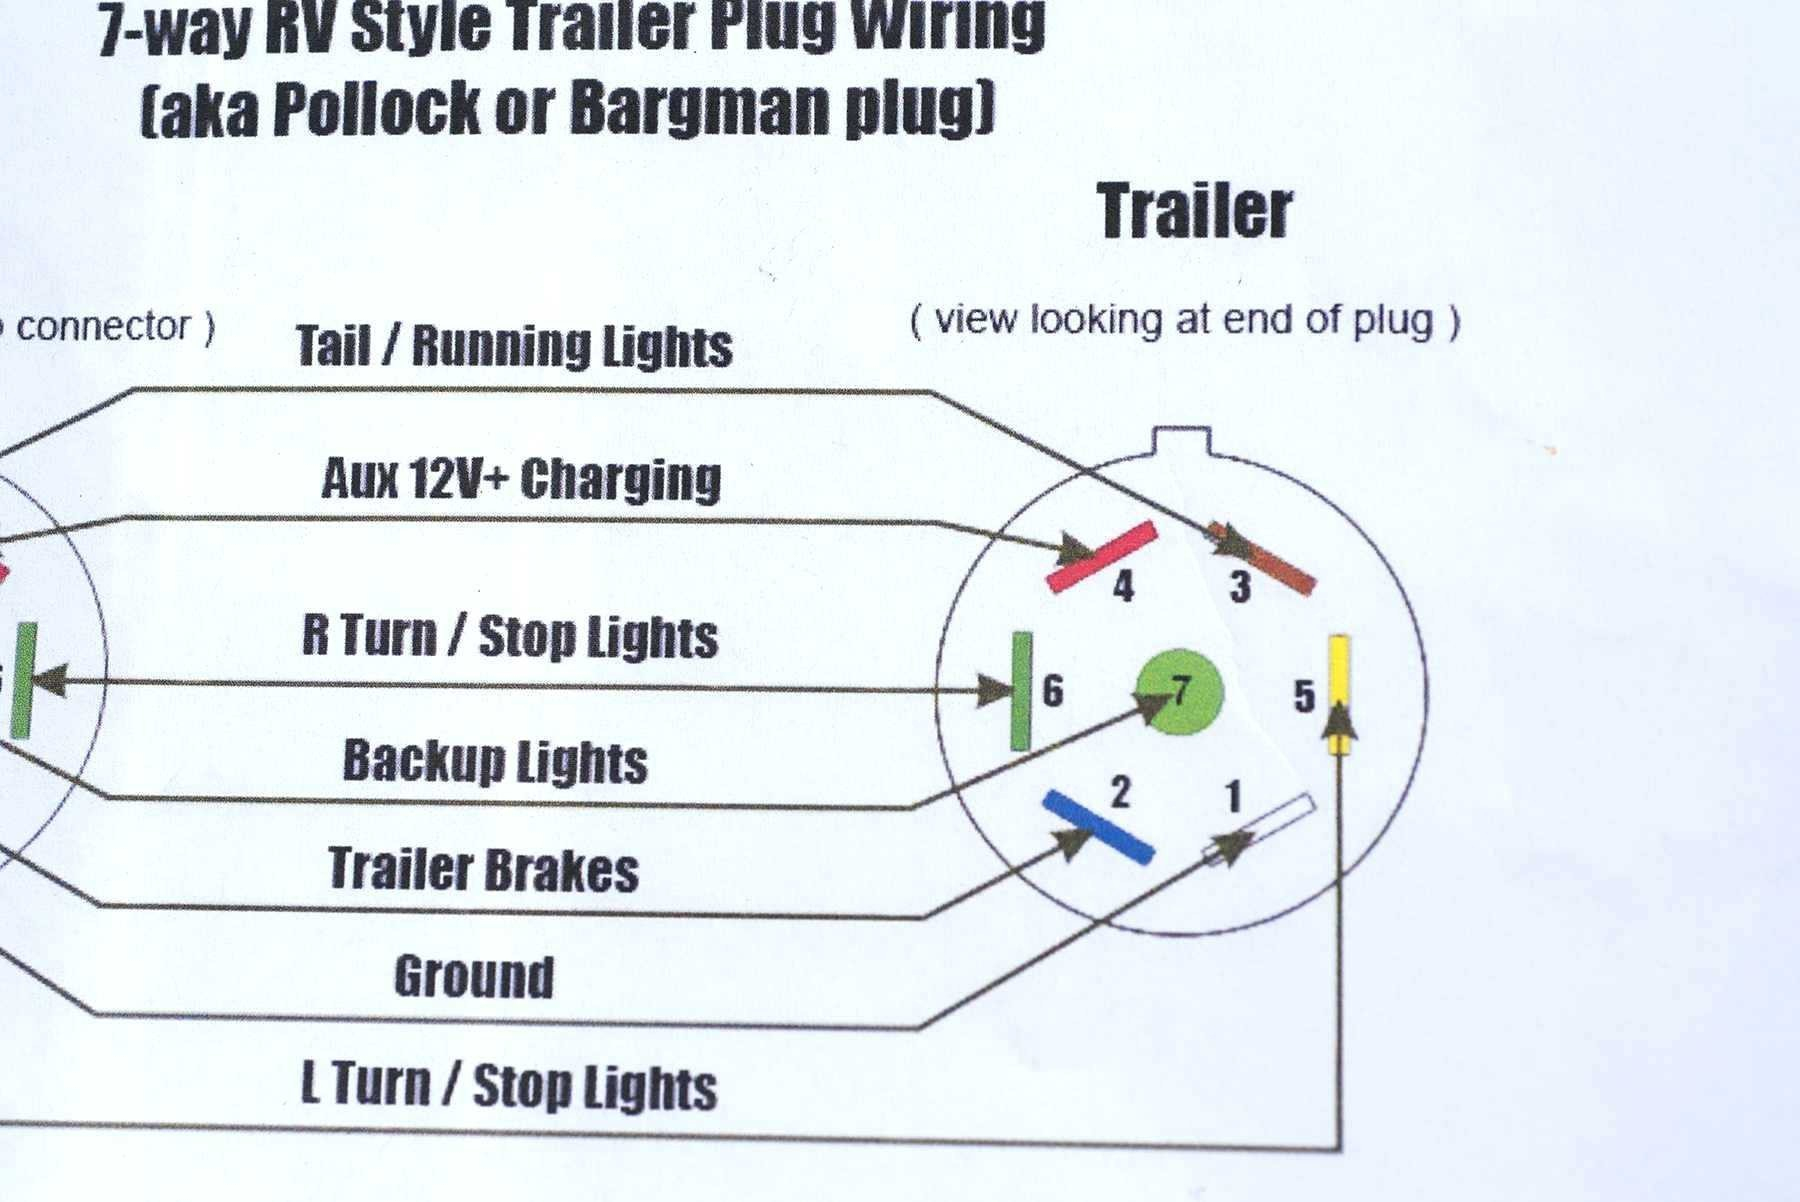 Trailer Wiring Diagram 7 Way Gmc | Wiring Library - 2003 Dodge Ram 7 Pin Trailer Wiring Diagram